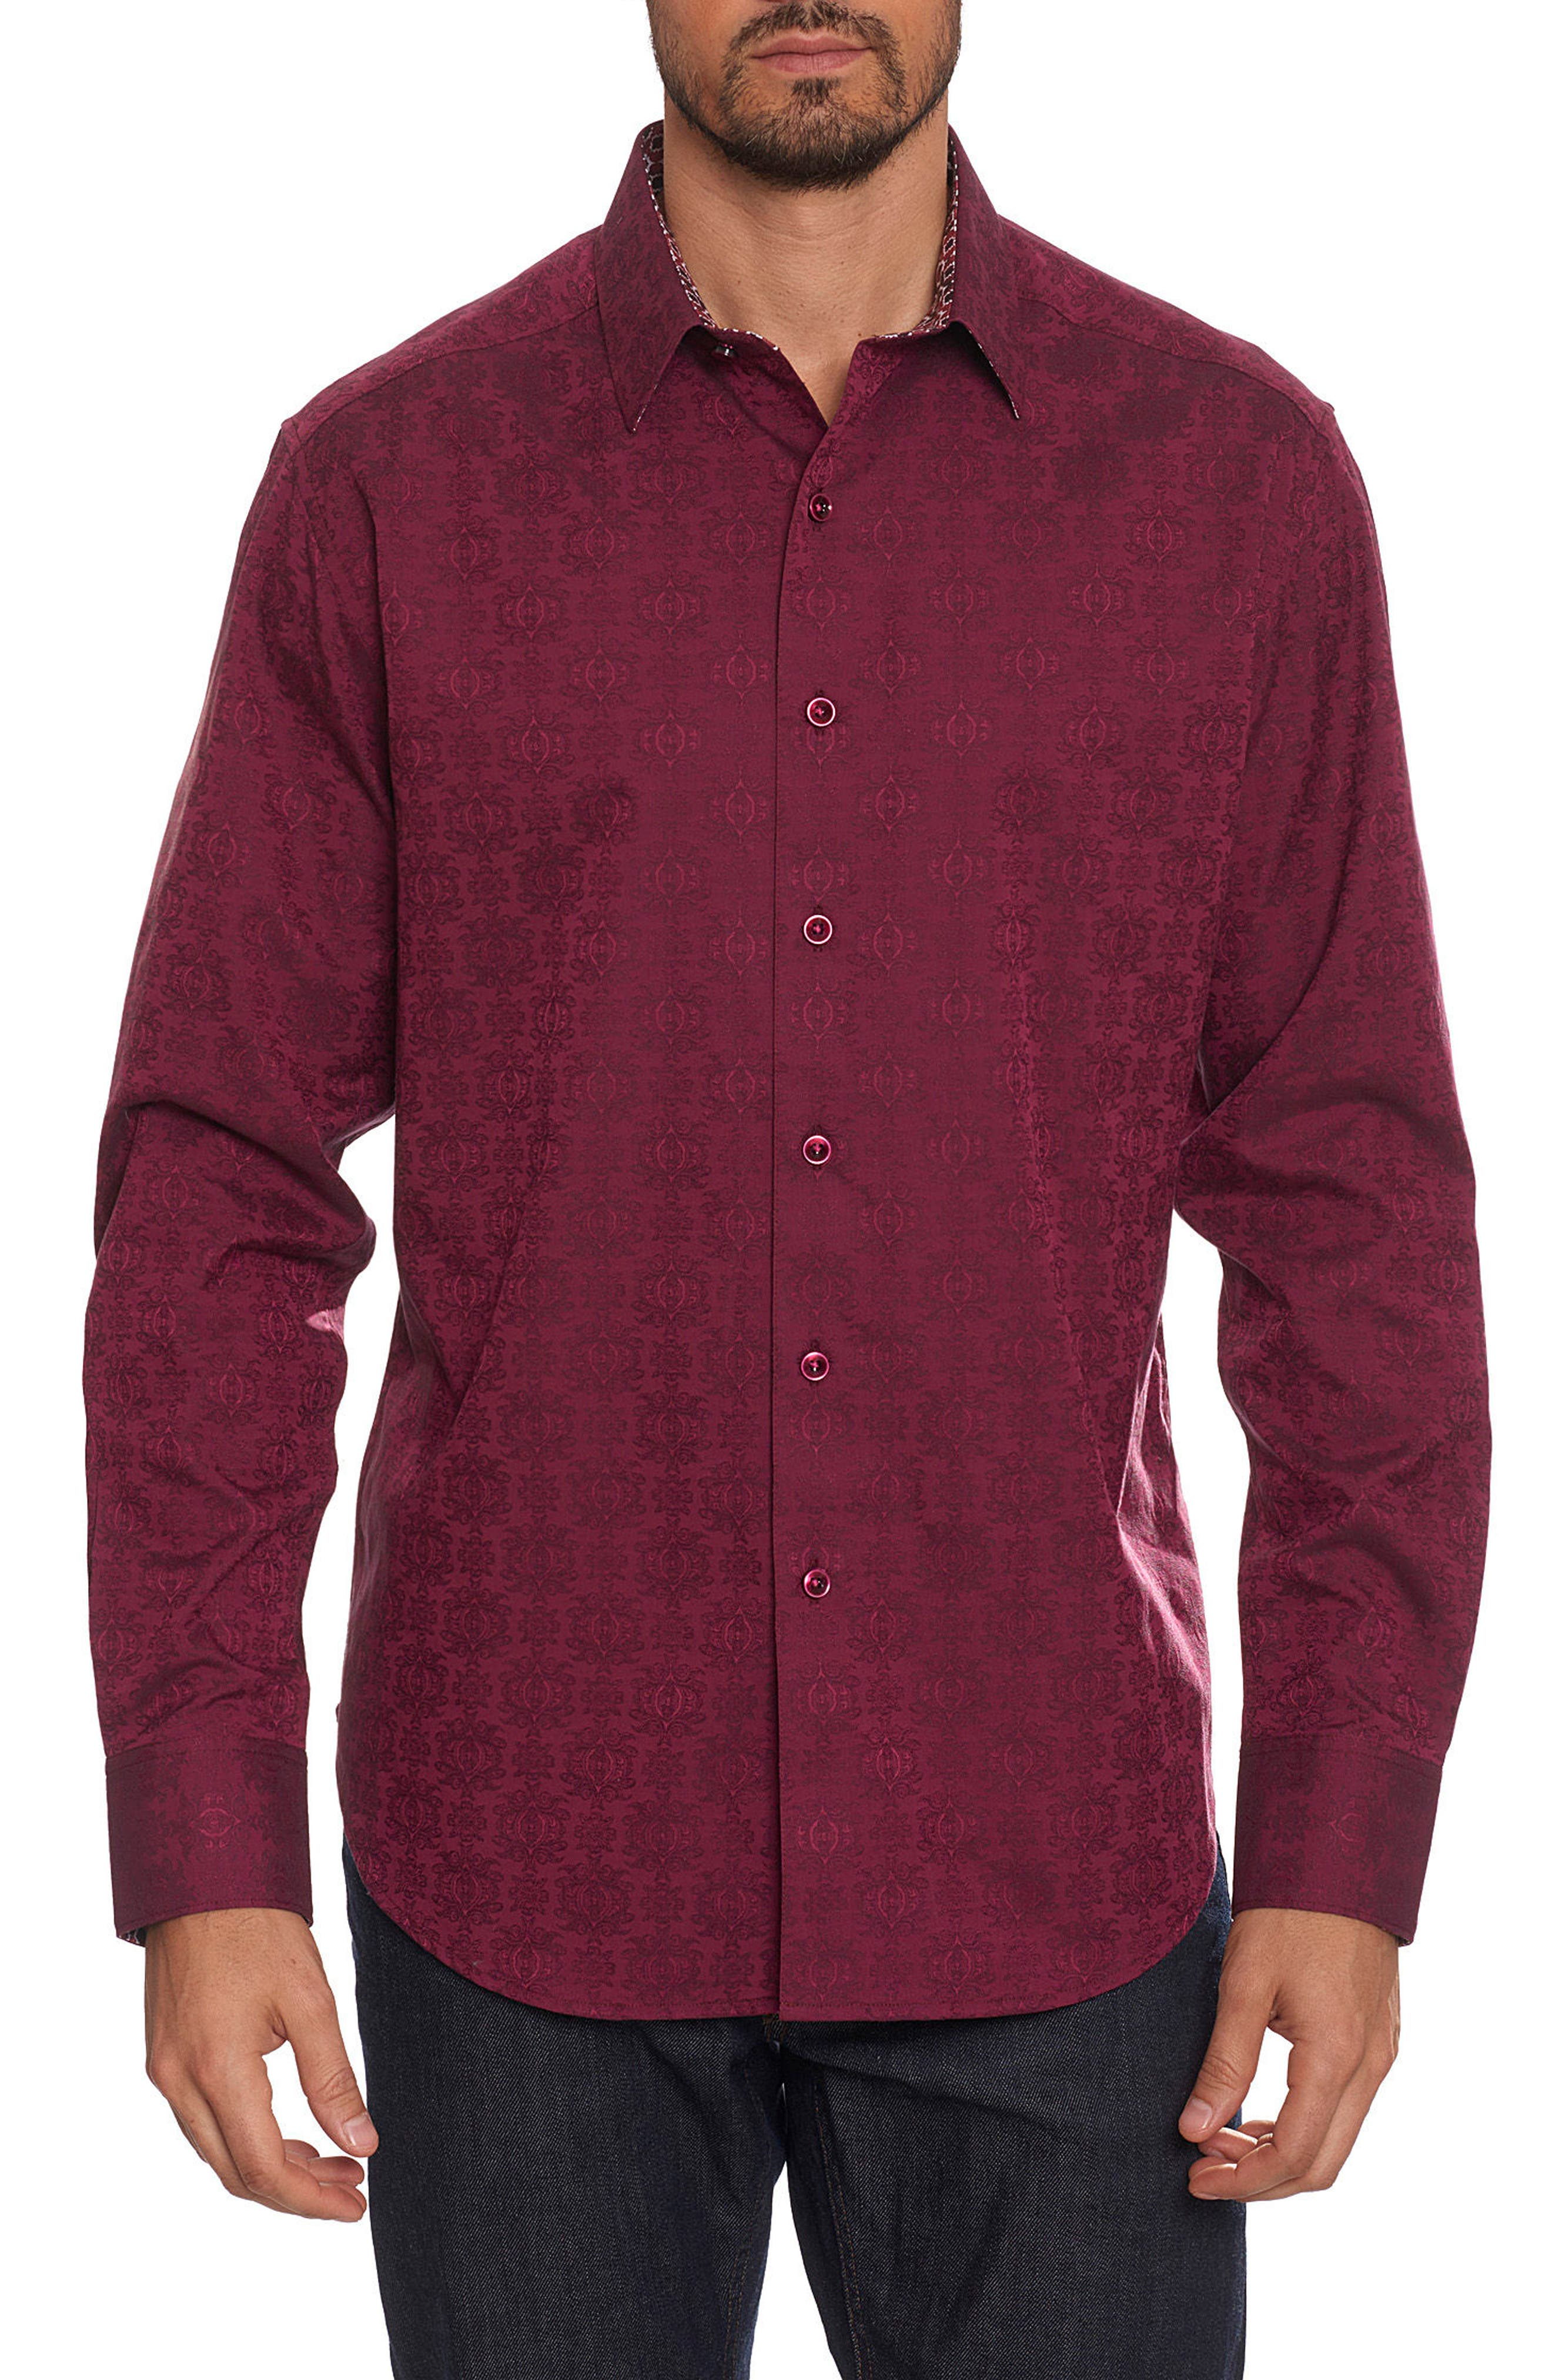 Cullen Classic Fit Jacquard Sport Shirt,                         Main,                         color,